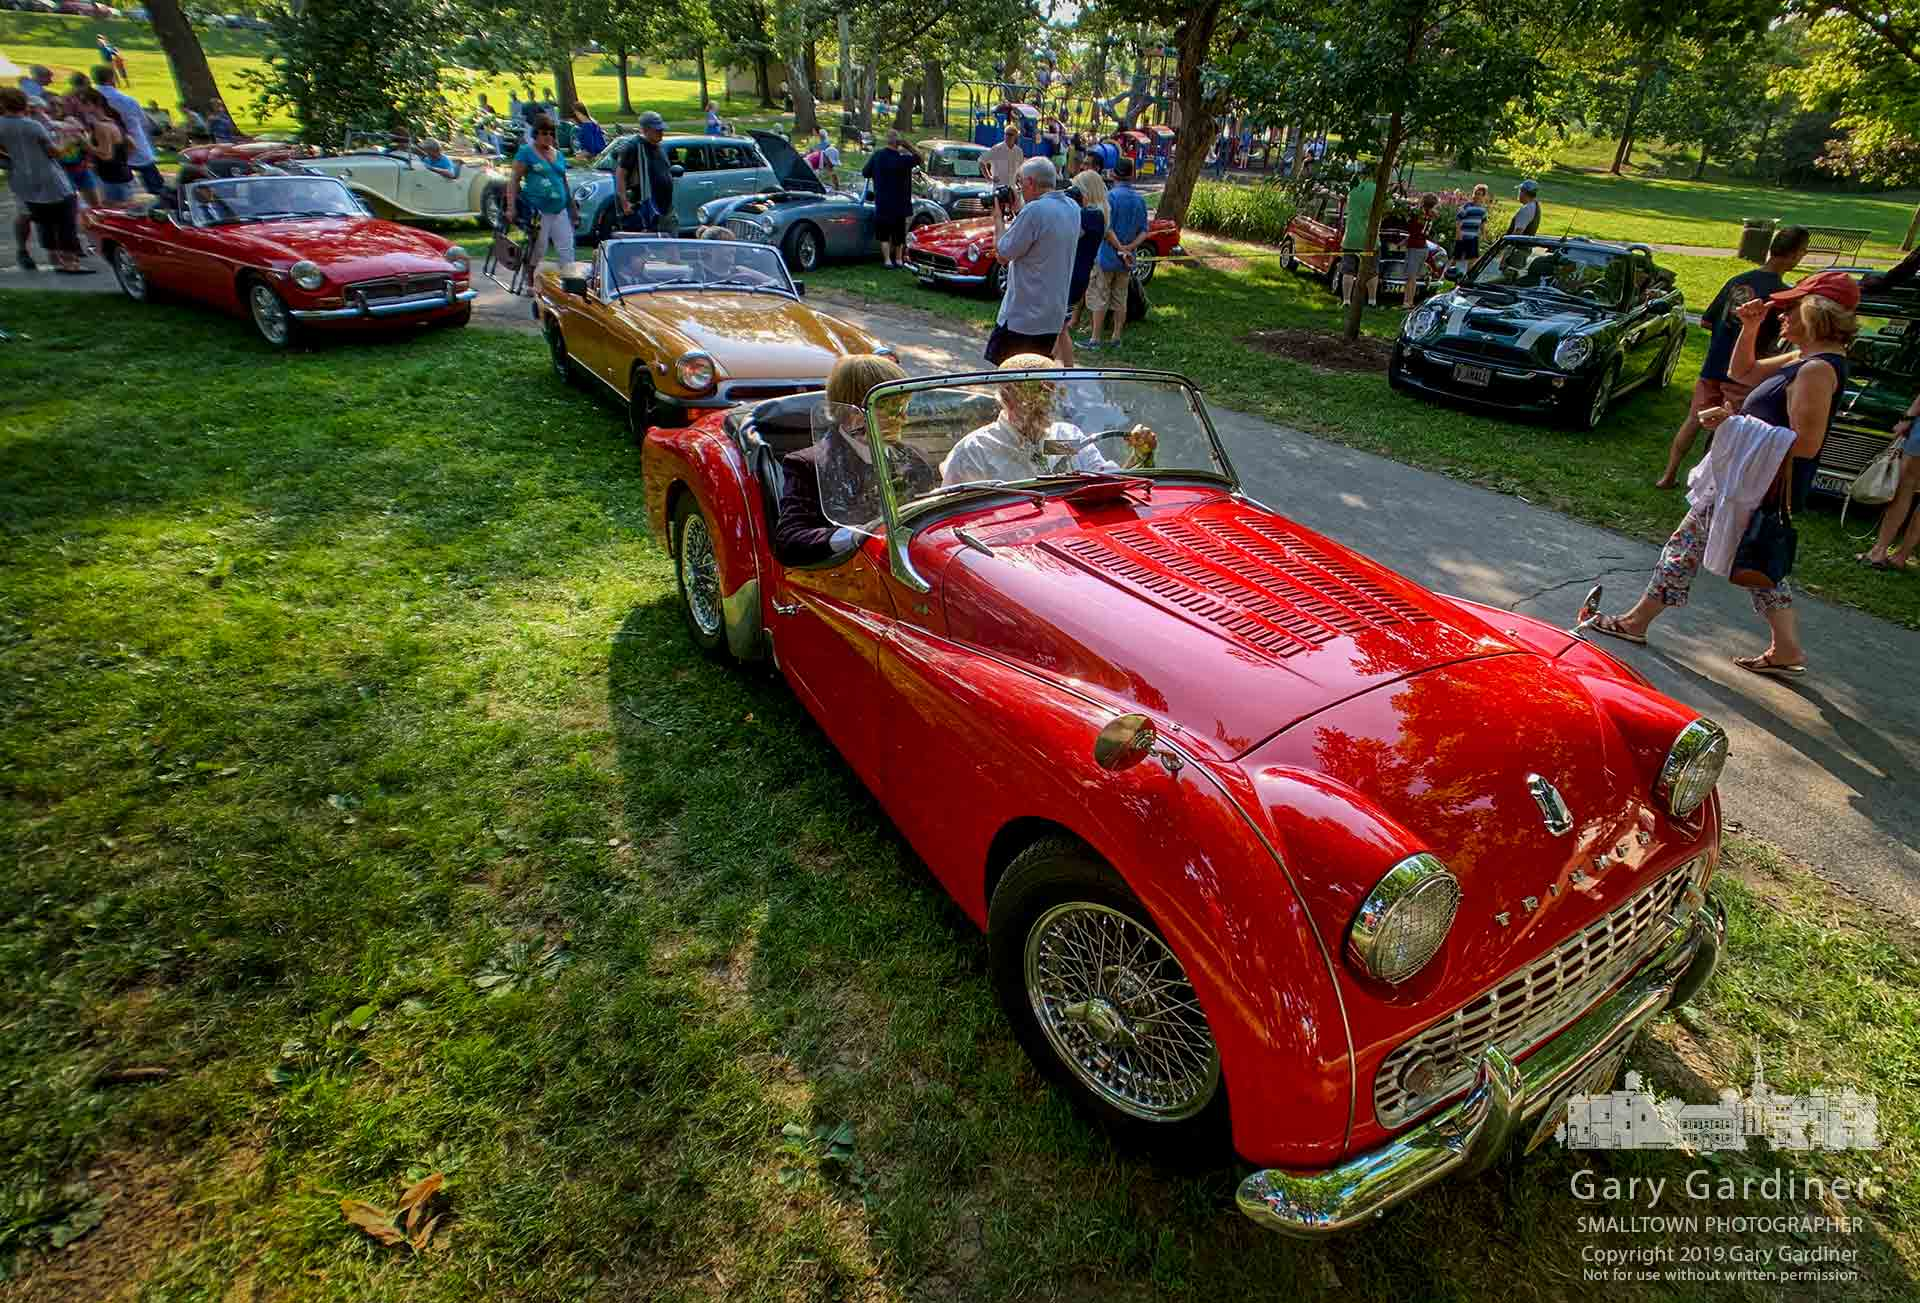 A red Triumph Roadster leads the line of British sports cars taking The British Invasion to the stage at the Alum Creek Amphitheater where the group performed popular British songs from the 60s and 70s. My Final Photo for July 14, 2019.